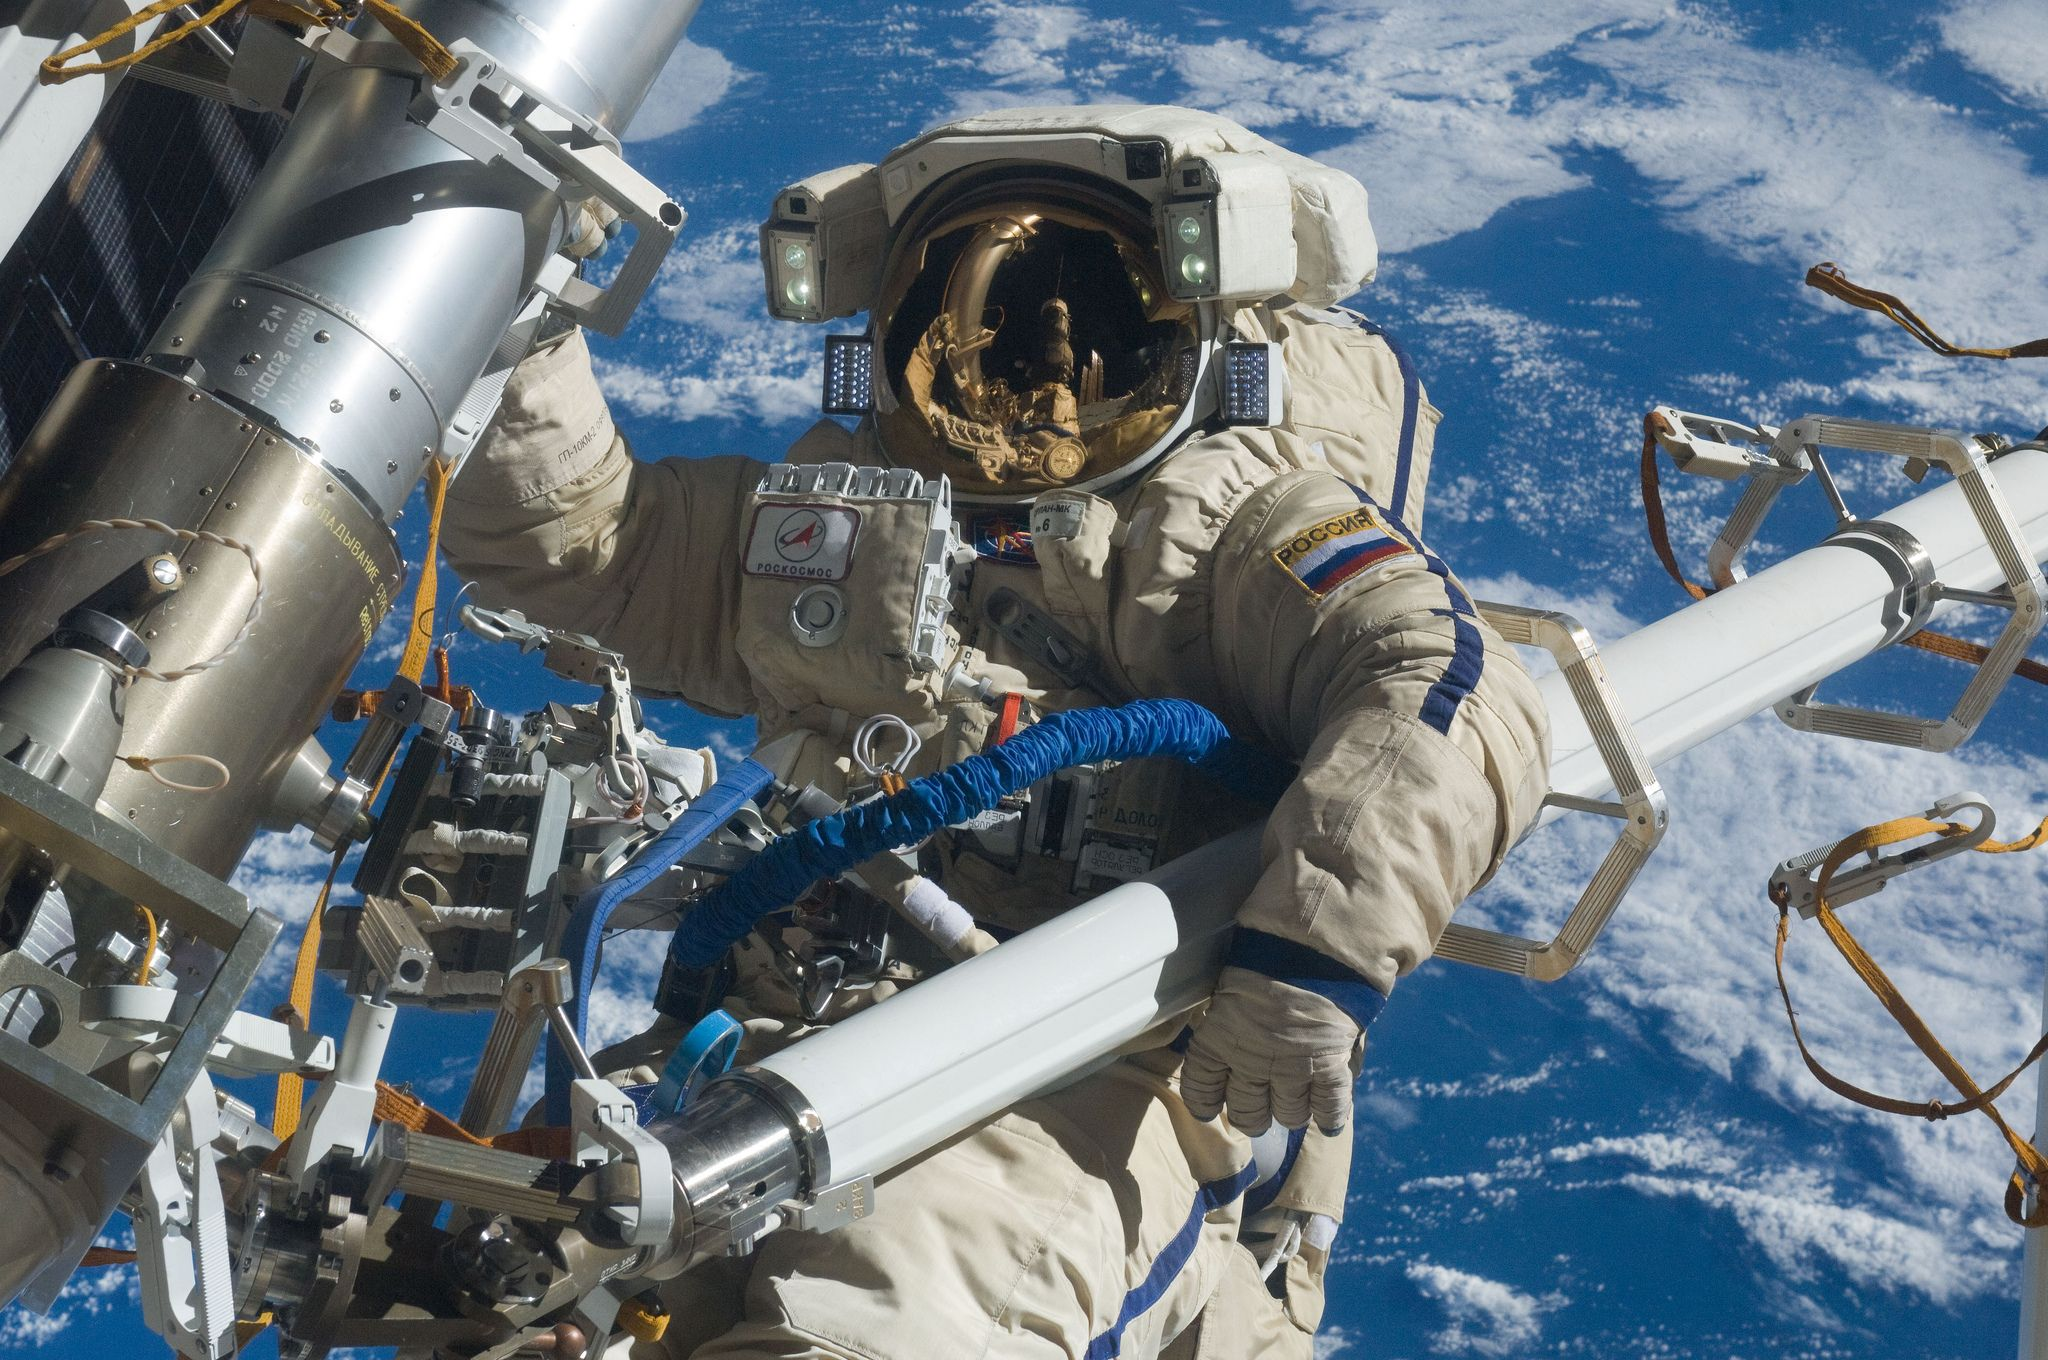 02_05_iss_astronaut_spacewalk